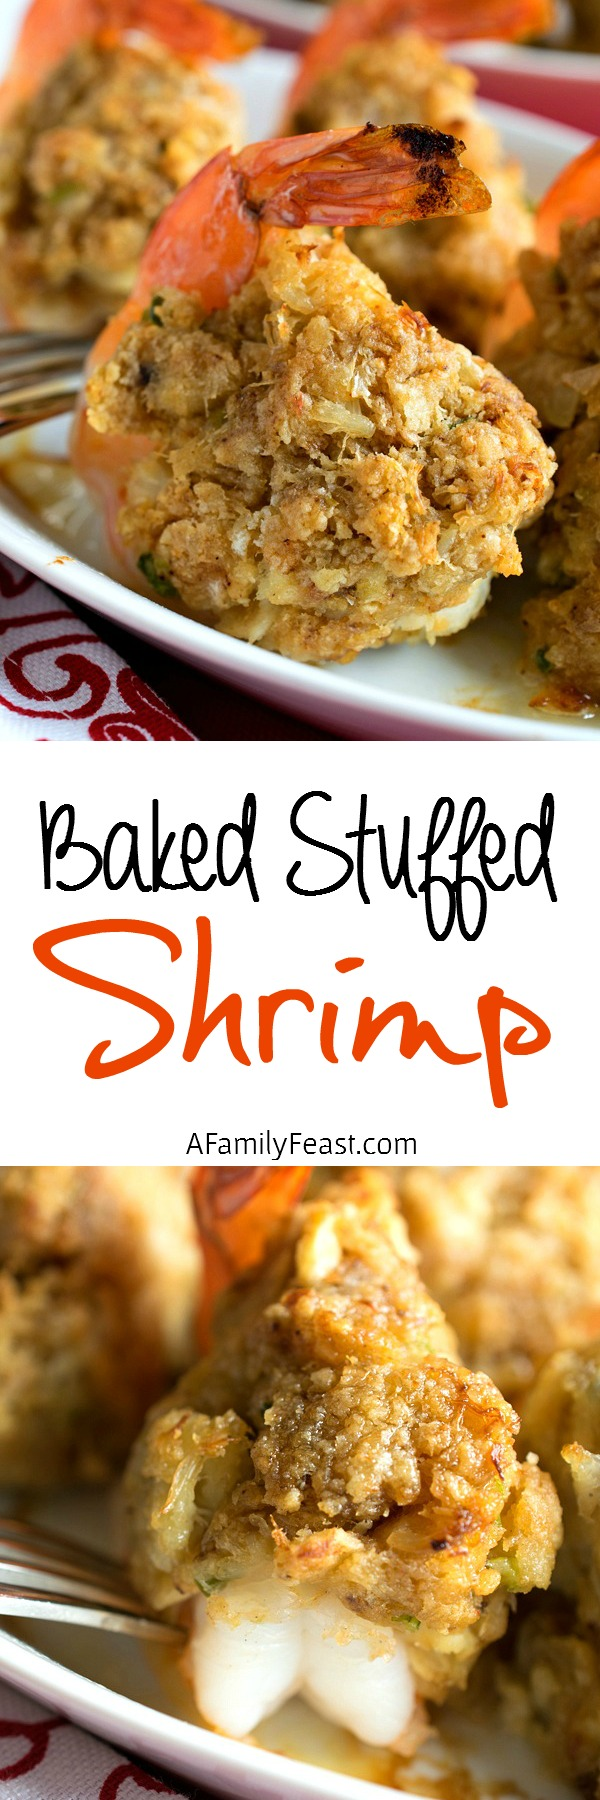 We're showing you how to make restaurant-quality Baked Stuffed Shrimp at home!